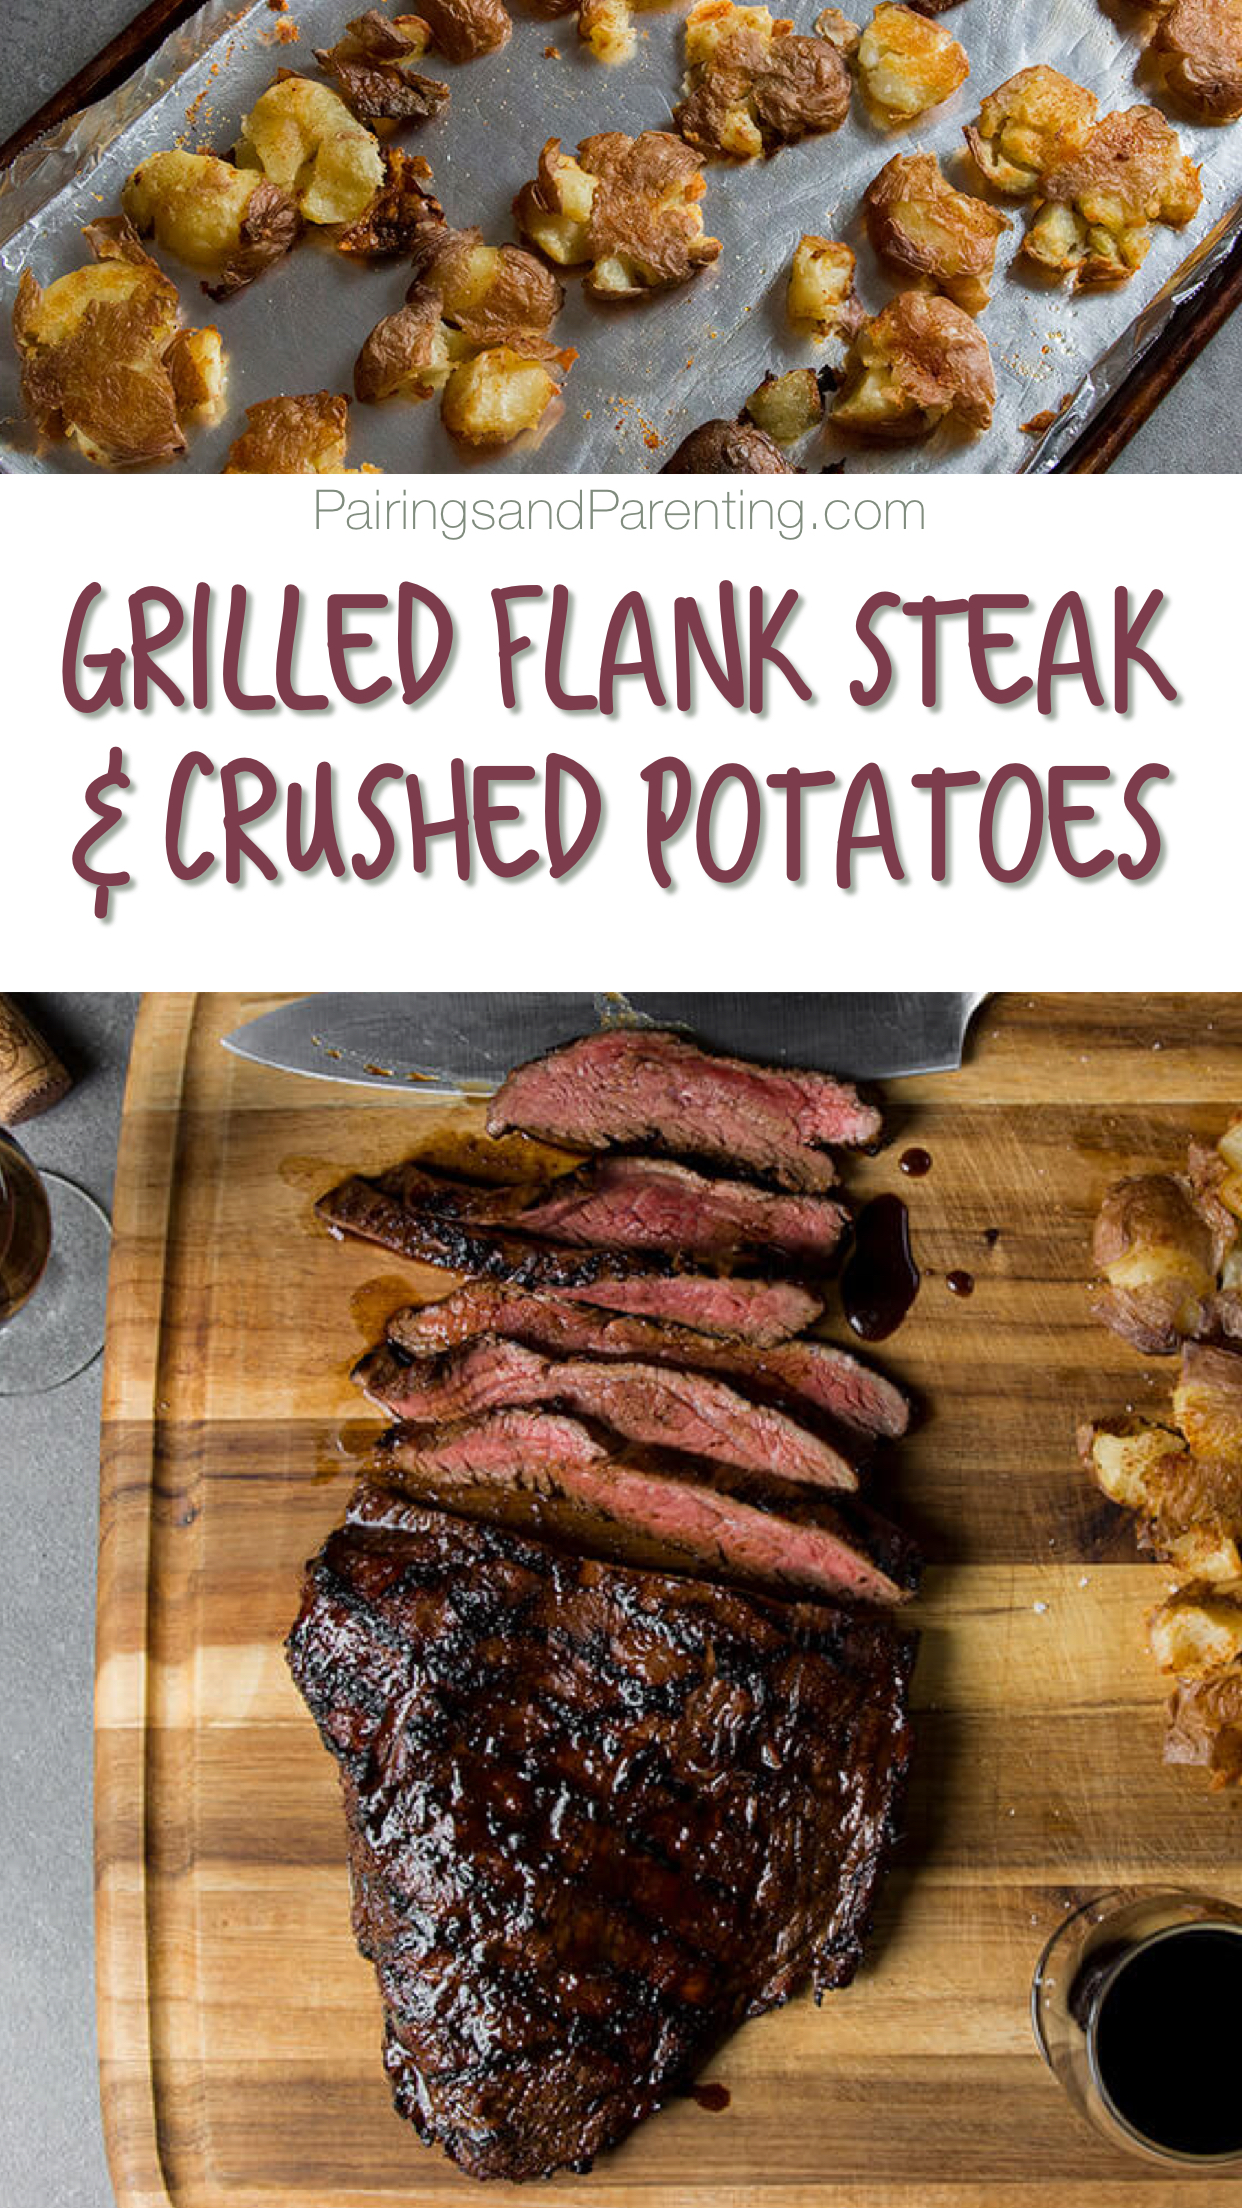 Grilled Flank Steak & Crushed Potatoes